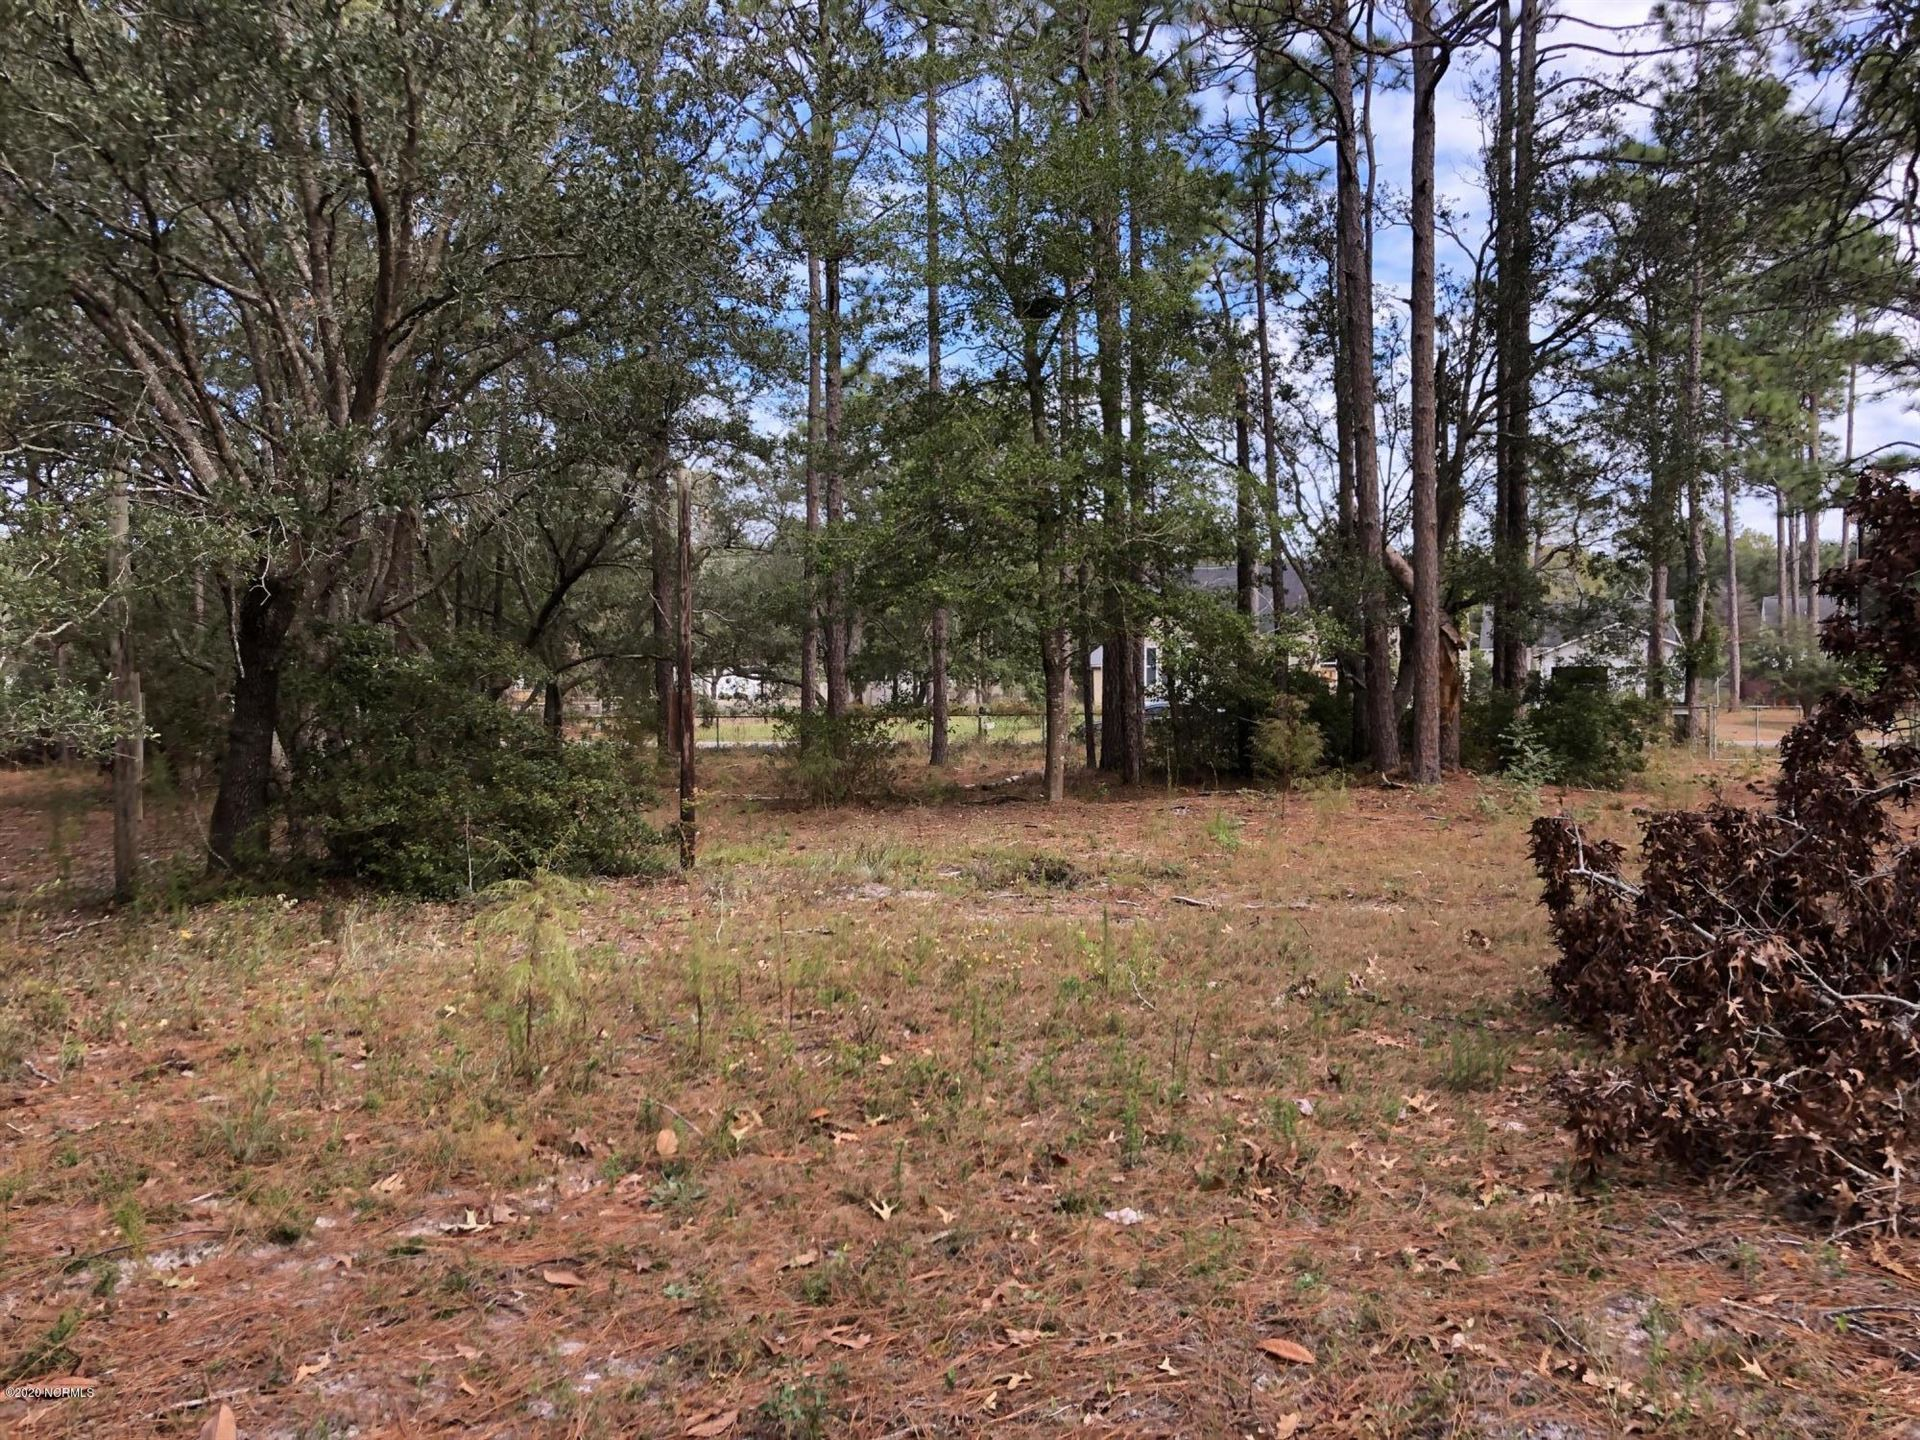 Photo of L-187 Sycamore Road, Southport, NC 28461 (MLS # 100290110)